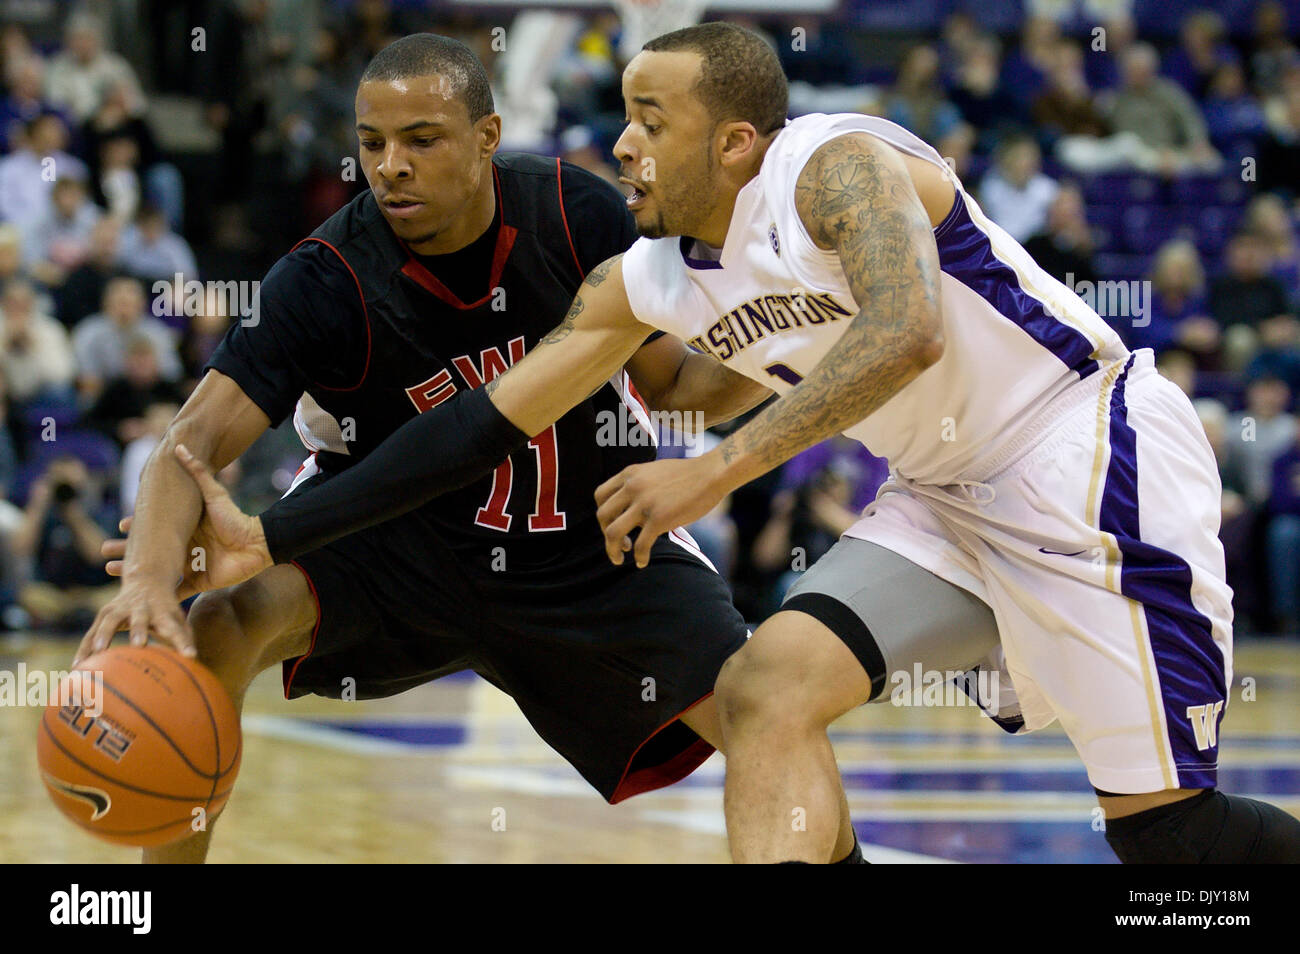 Nov. 16, 2010 - Seattle, Washington, United States of America - Washington Huskies guard Venoy Overton (1) steals the ball from Eastern Washington Eagles guard Cliff Colimon (11) during the game between Eastern Washington and the University of Washington at Bank of America Arena in Seattle, WA. University of Washington leads Eastern Washington 42-34 at the half. (Credit Image: © St - Stock Image